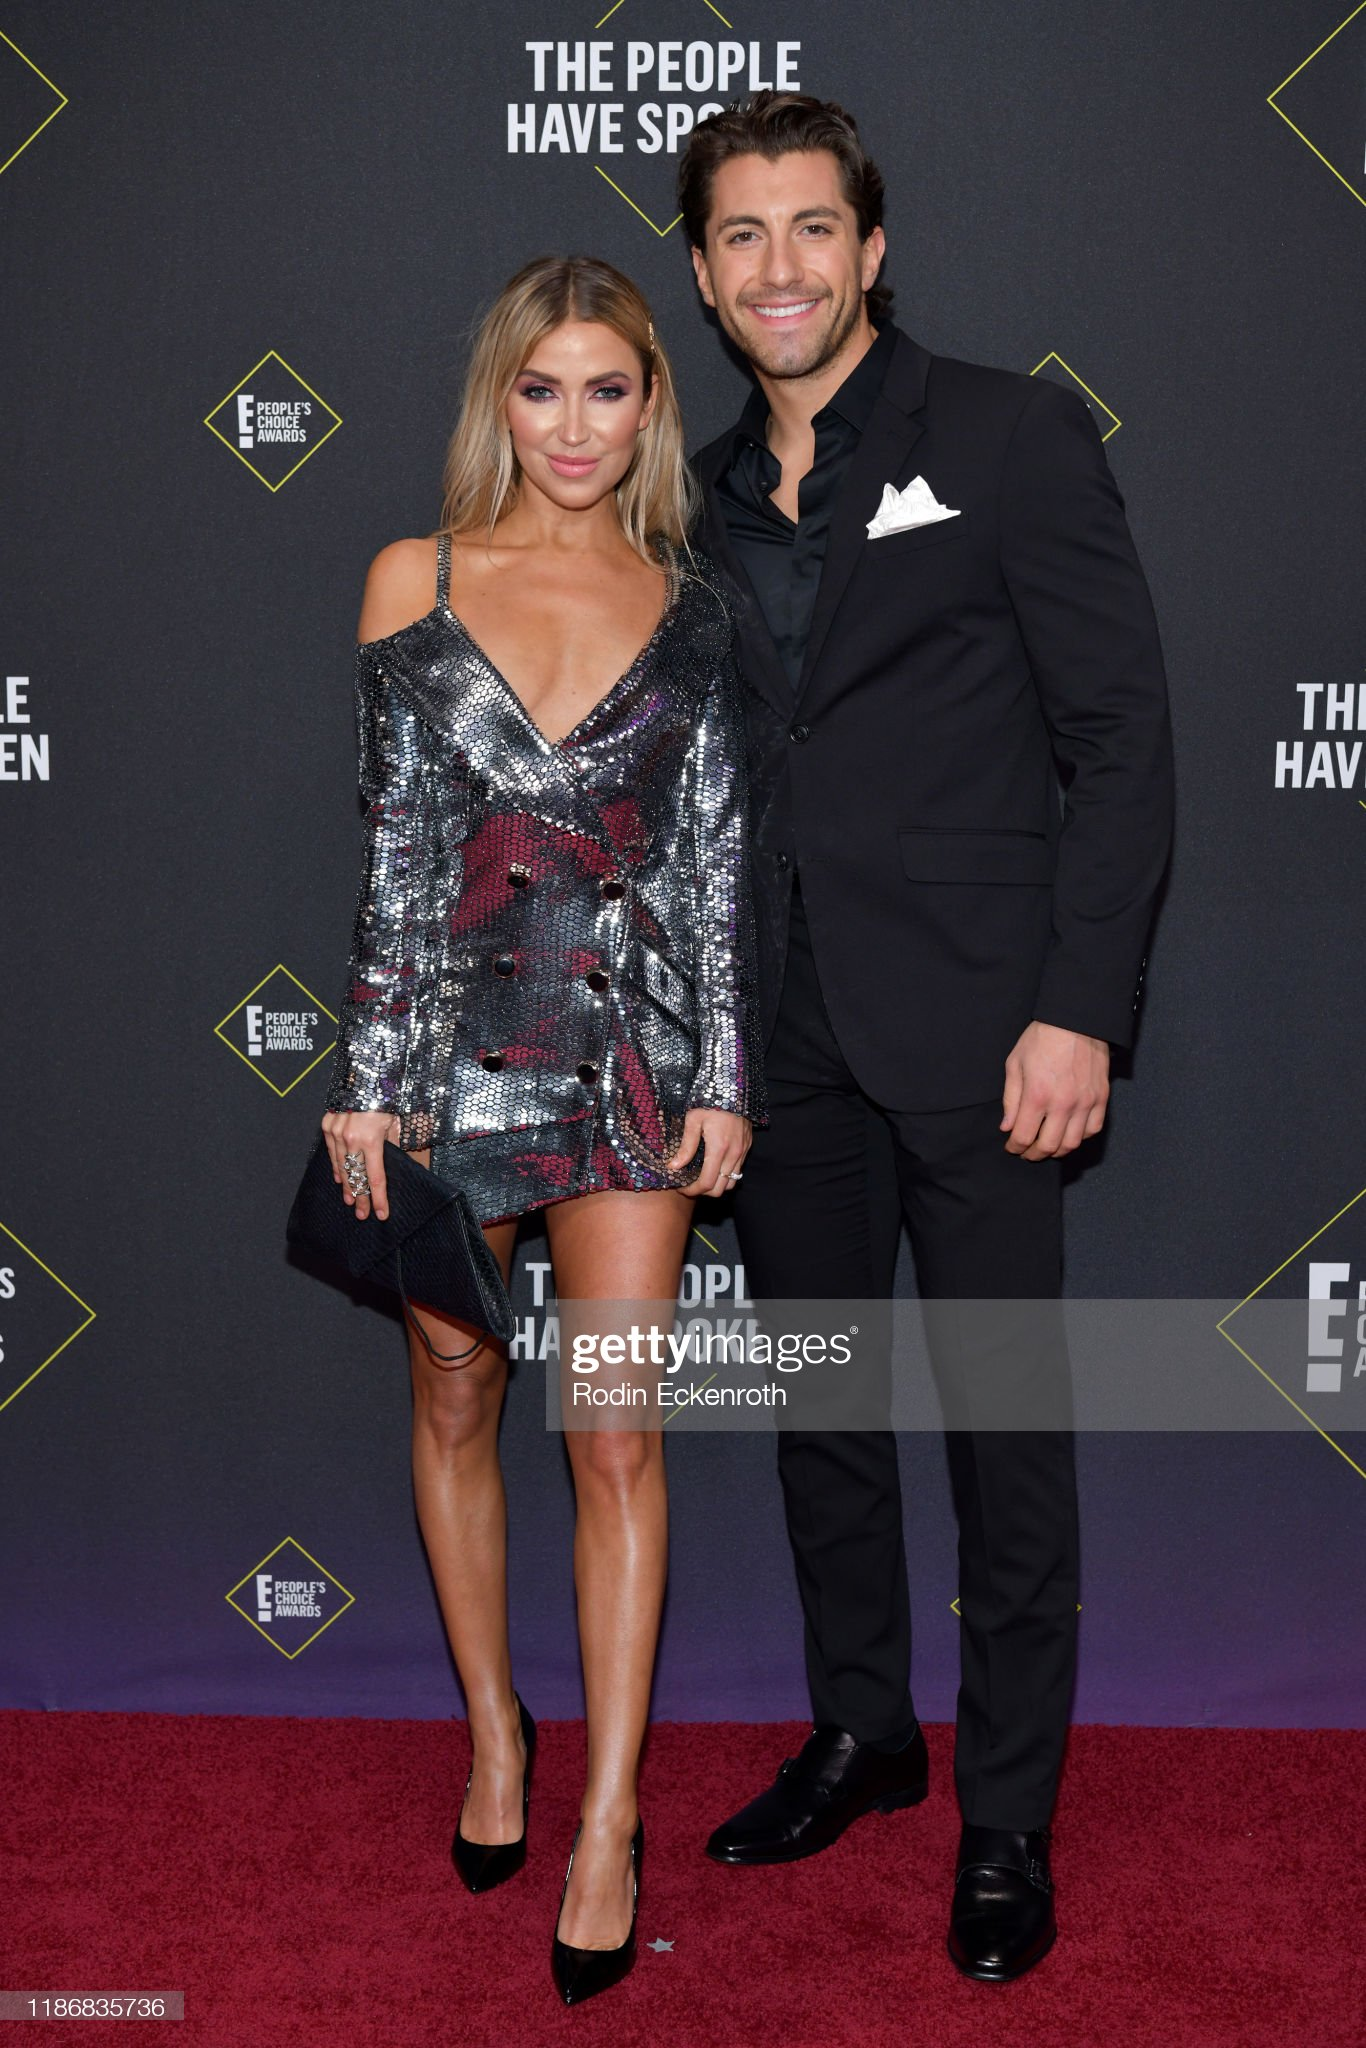 Kaitlyn Bristowe - Jason Tartick - FAN Forum - Discussion  - Page 45 Kaitlyn-bristowe-and-jason-tartick-attend-the-2019-e-peoples-choice-picture-id1186835736?s=2048x2048